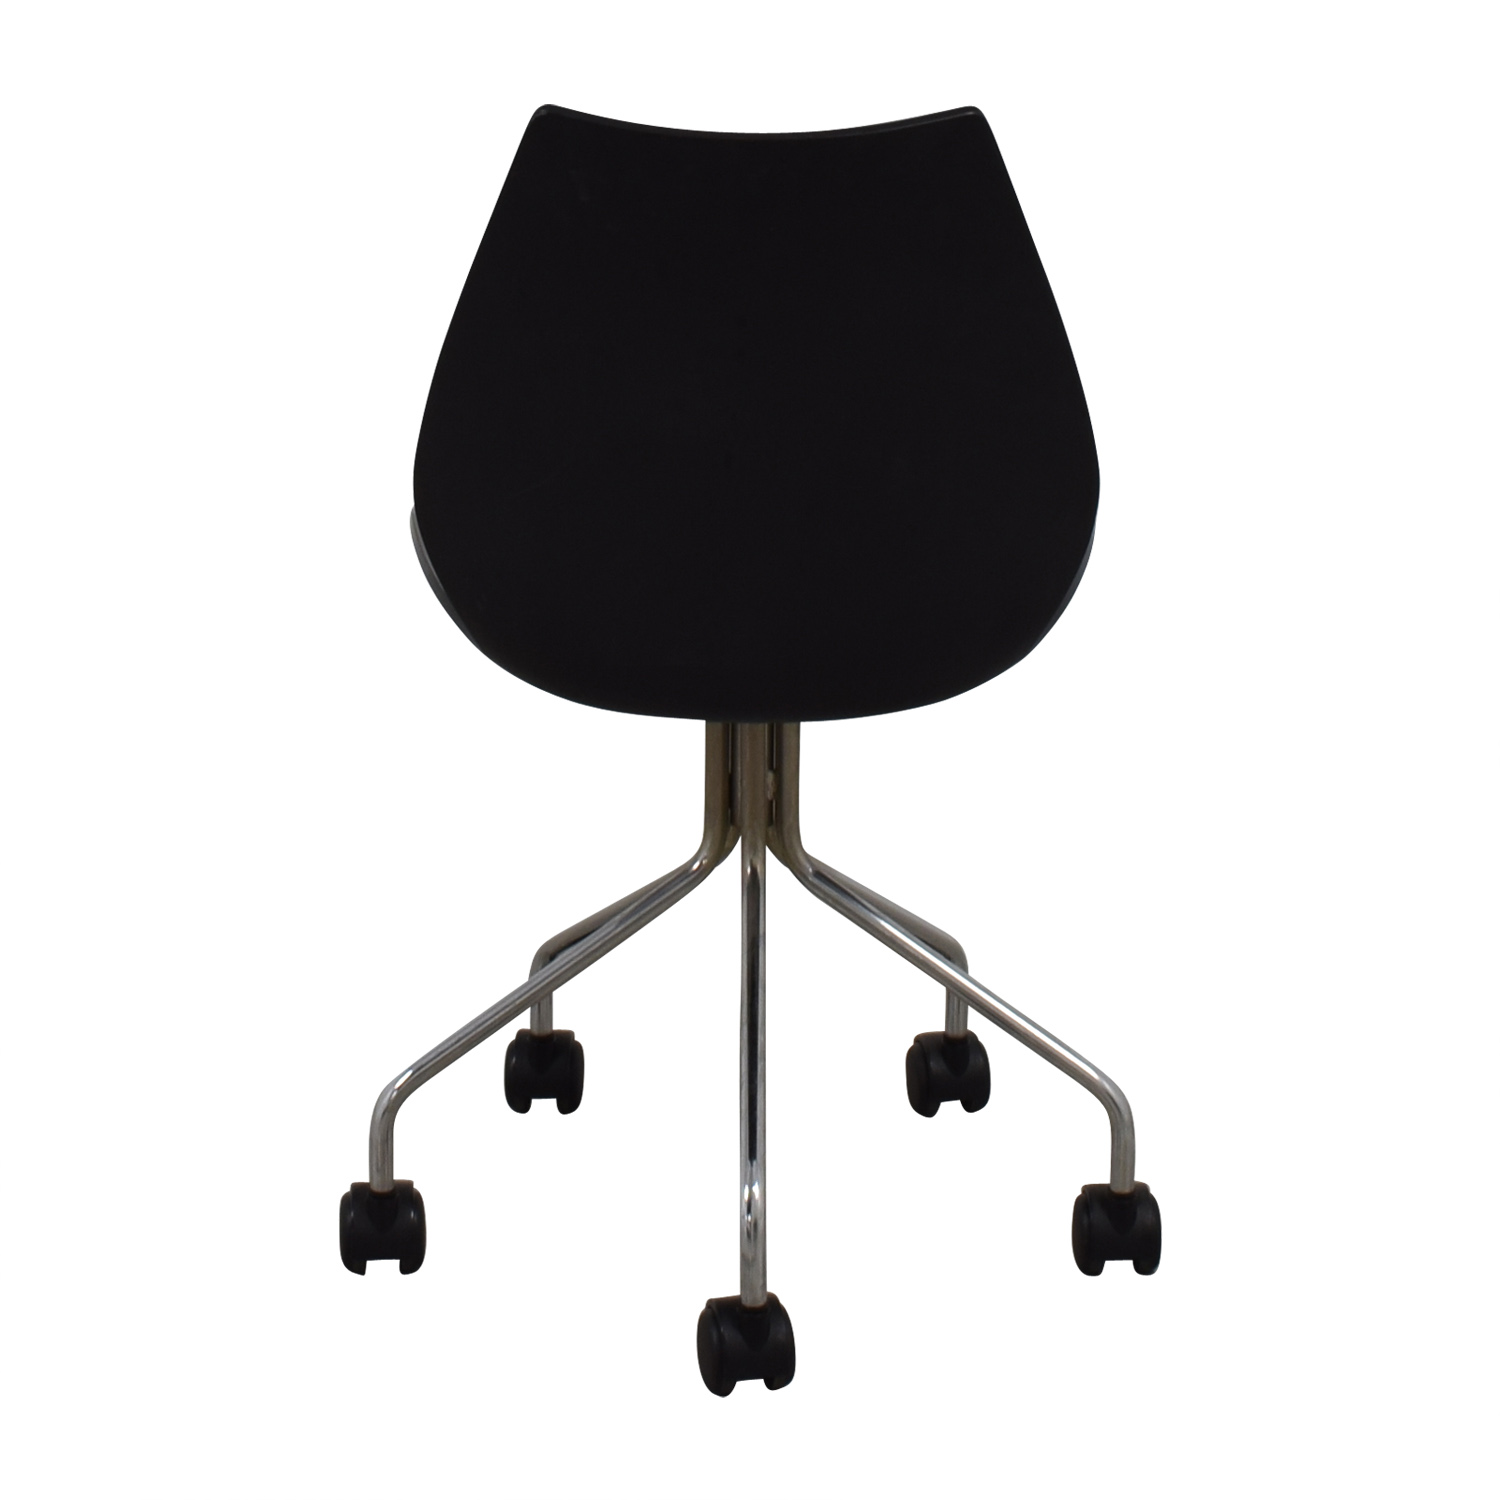 Kartell Kartell by Vico Magistretti Black Maui Office Chair price